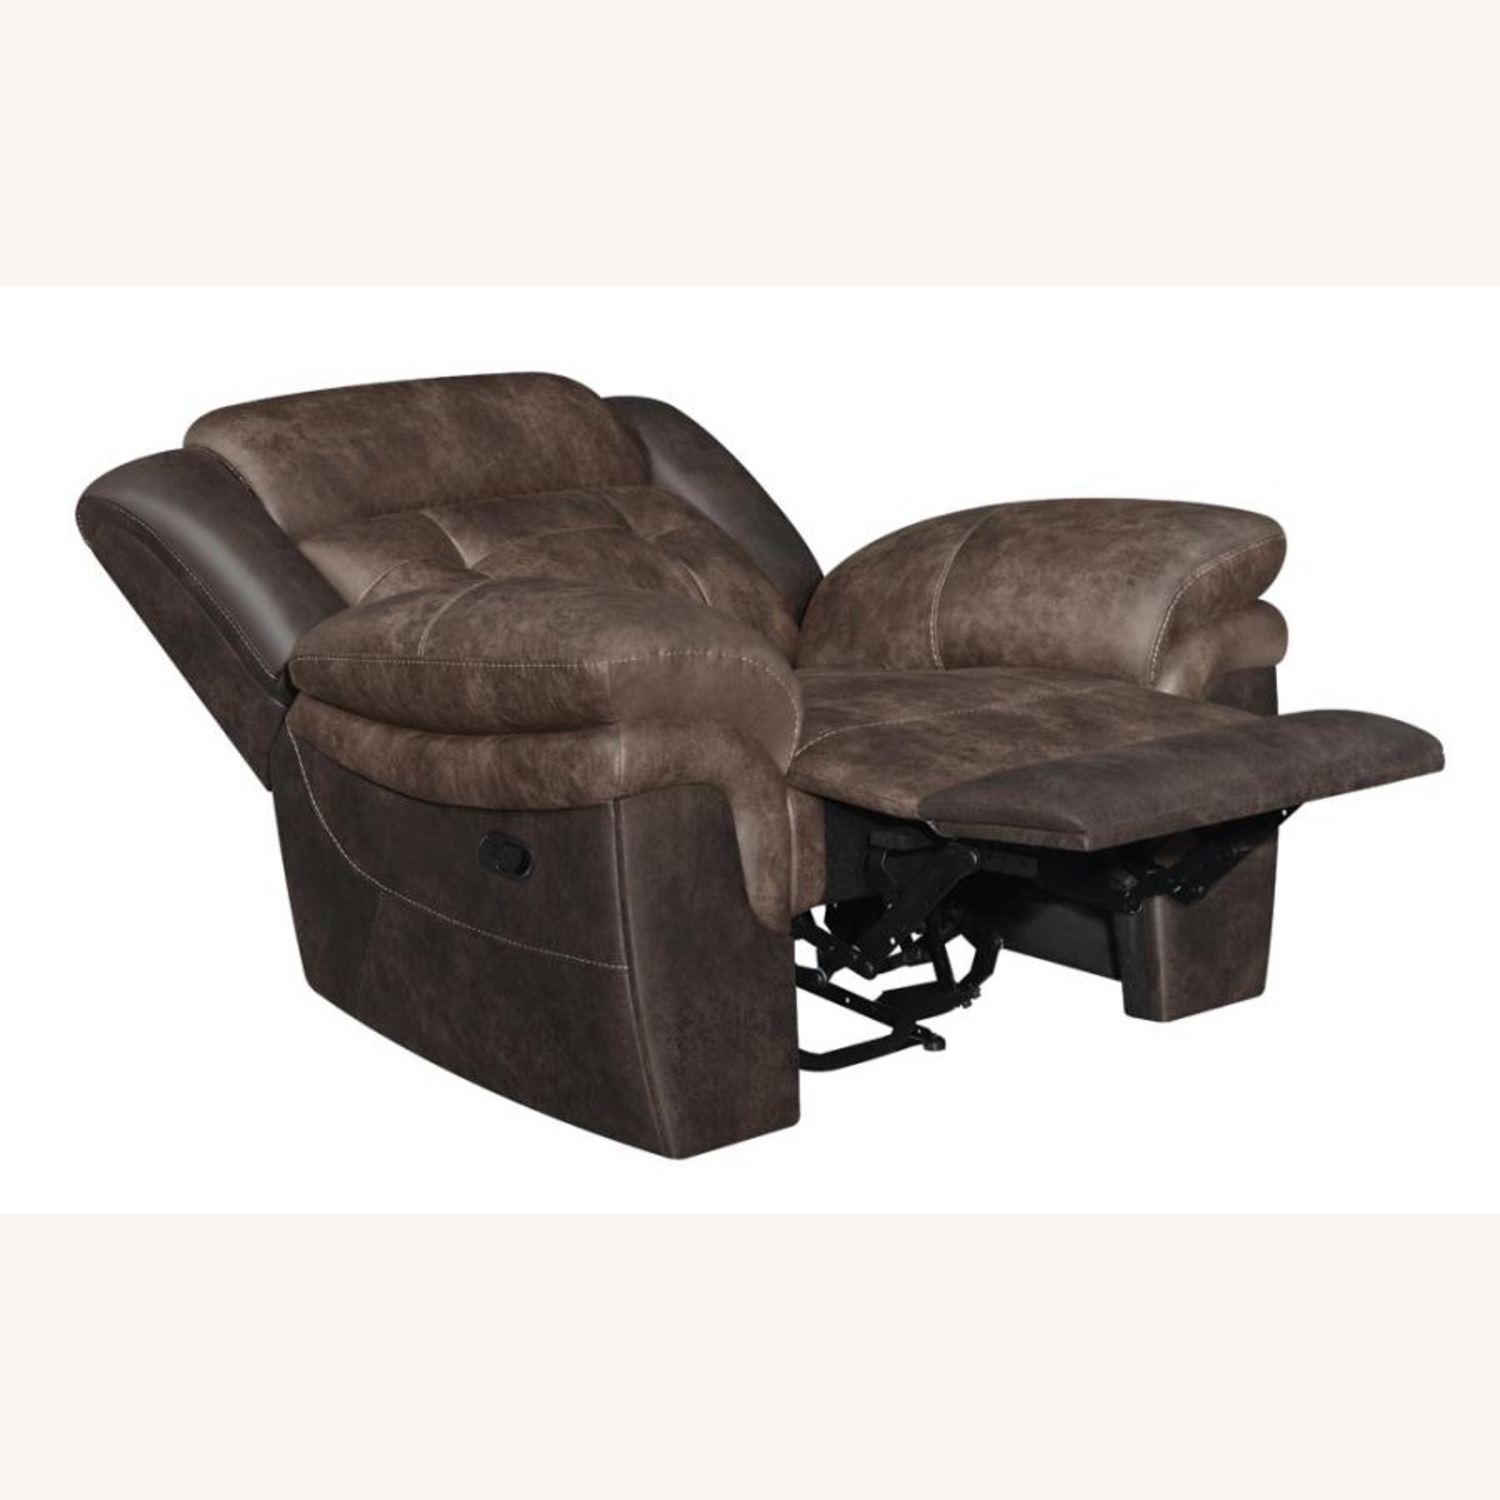 Recliner In Chocolate & Dark Brown Upholstery - image-1